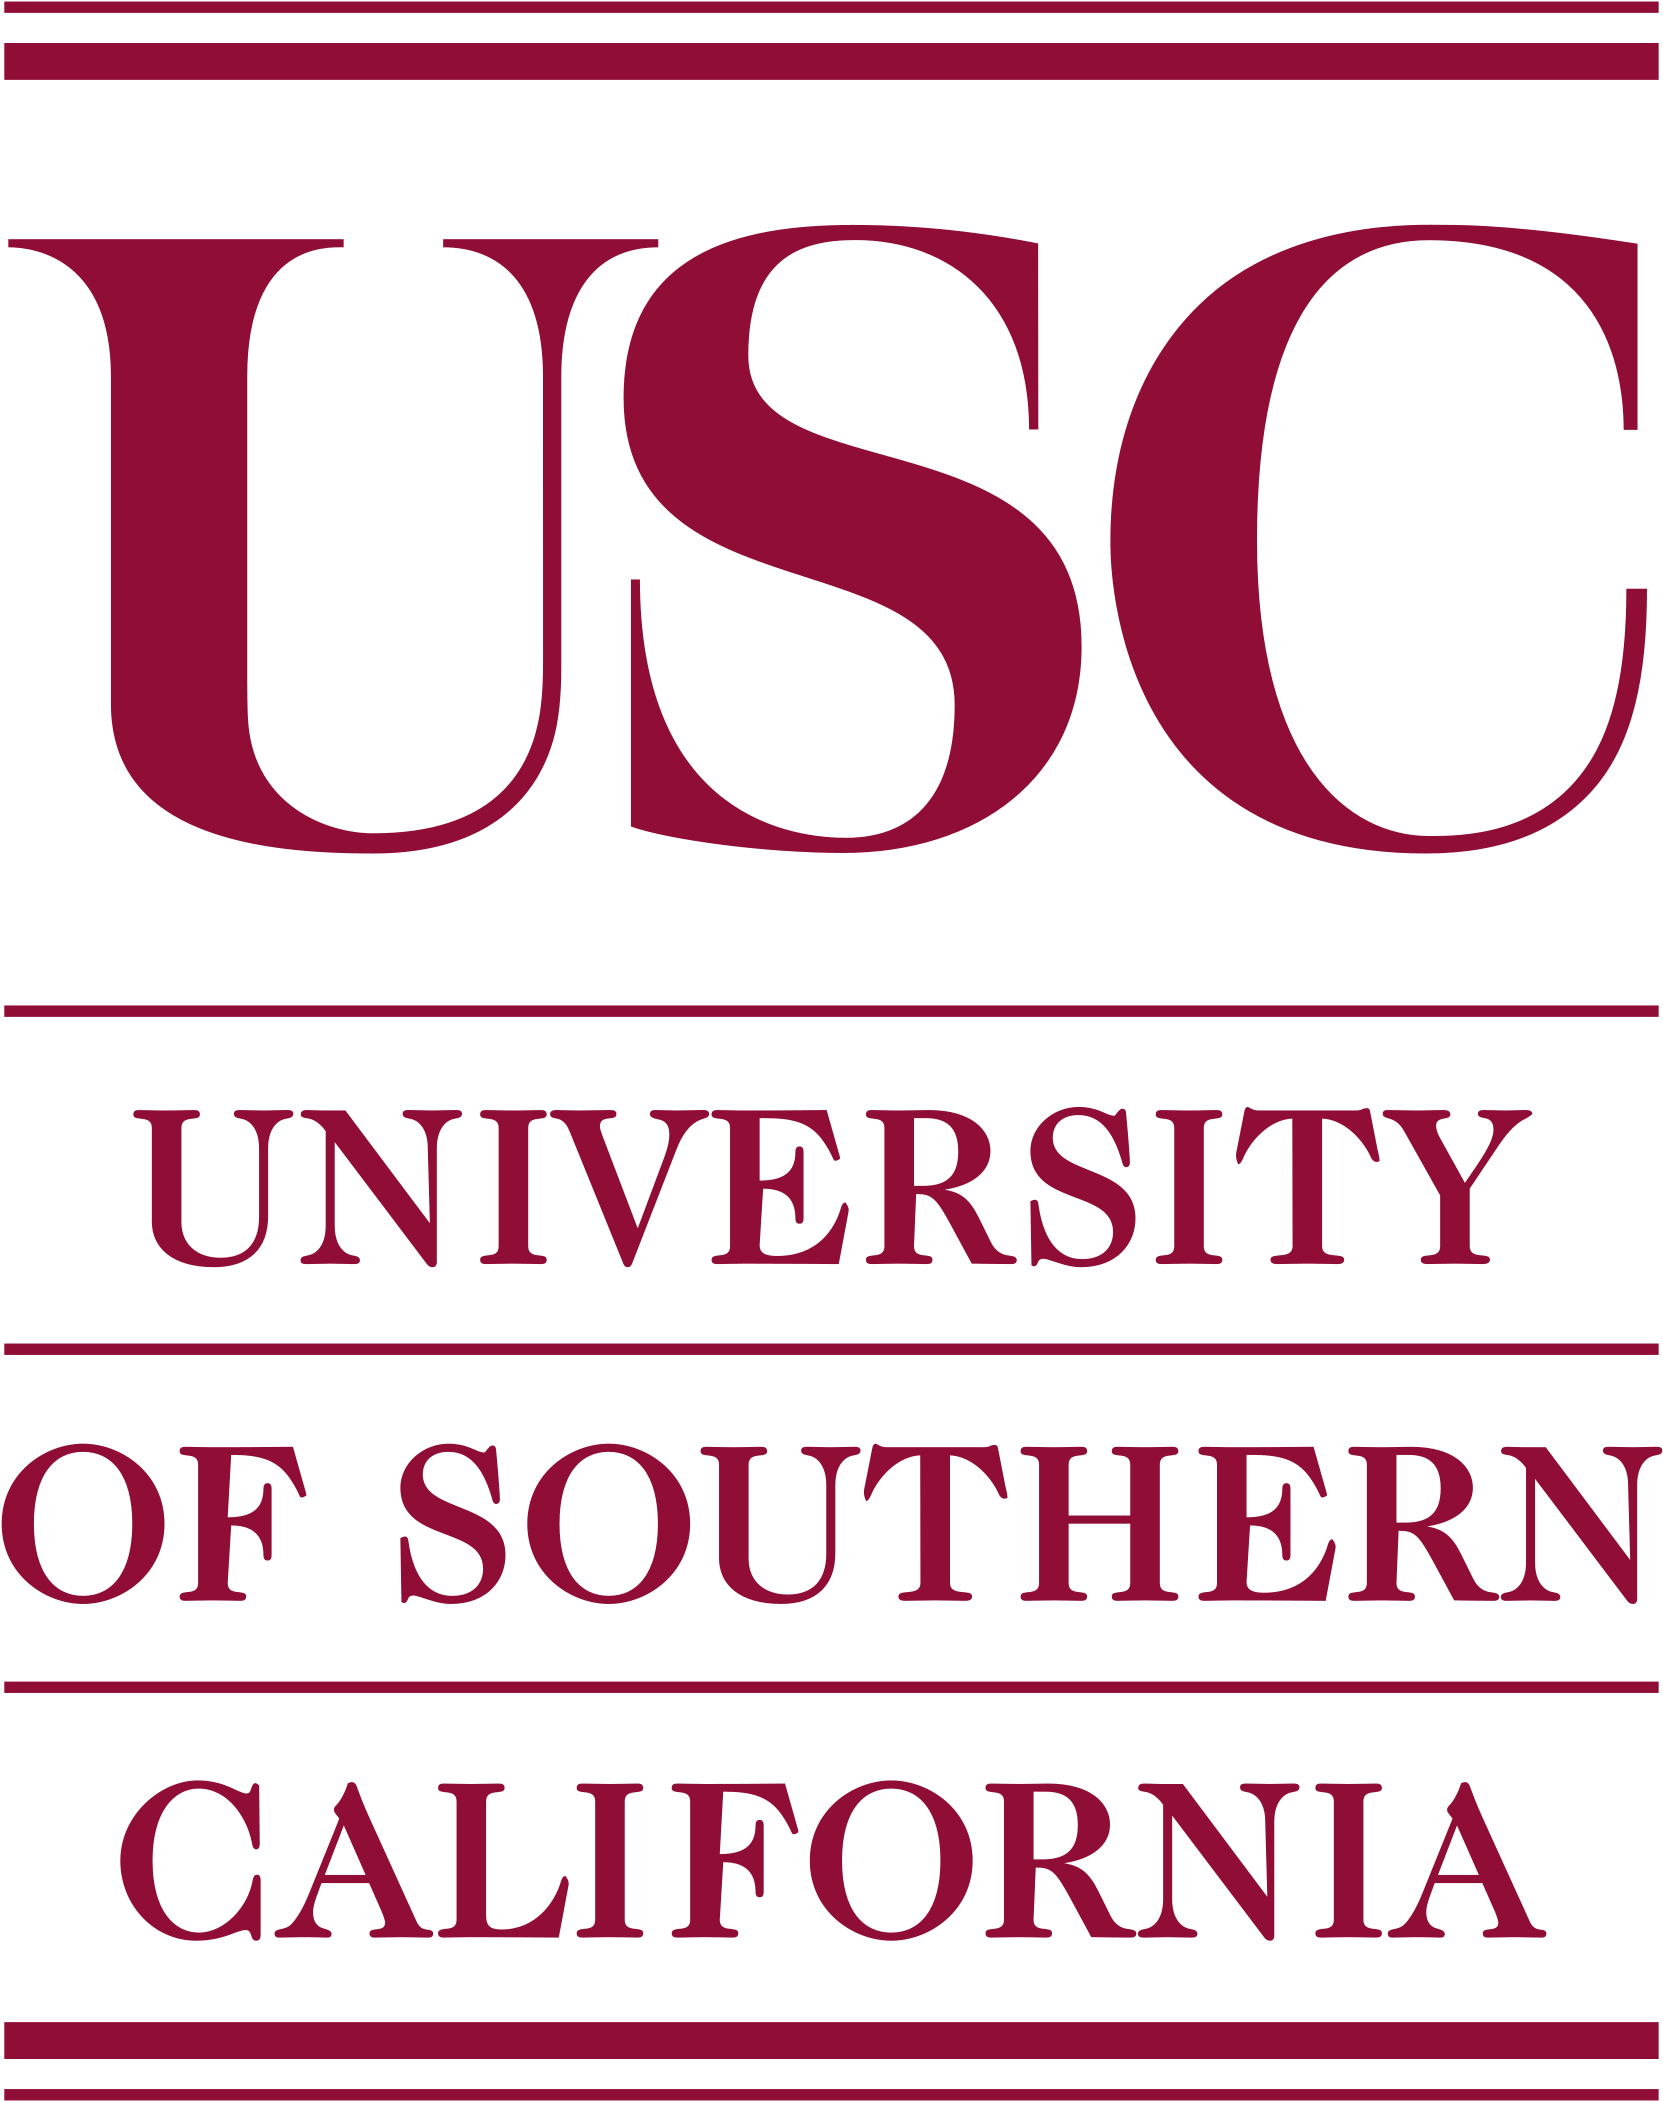 USC Spine Center – Los Angeles